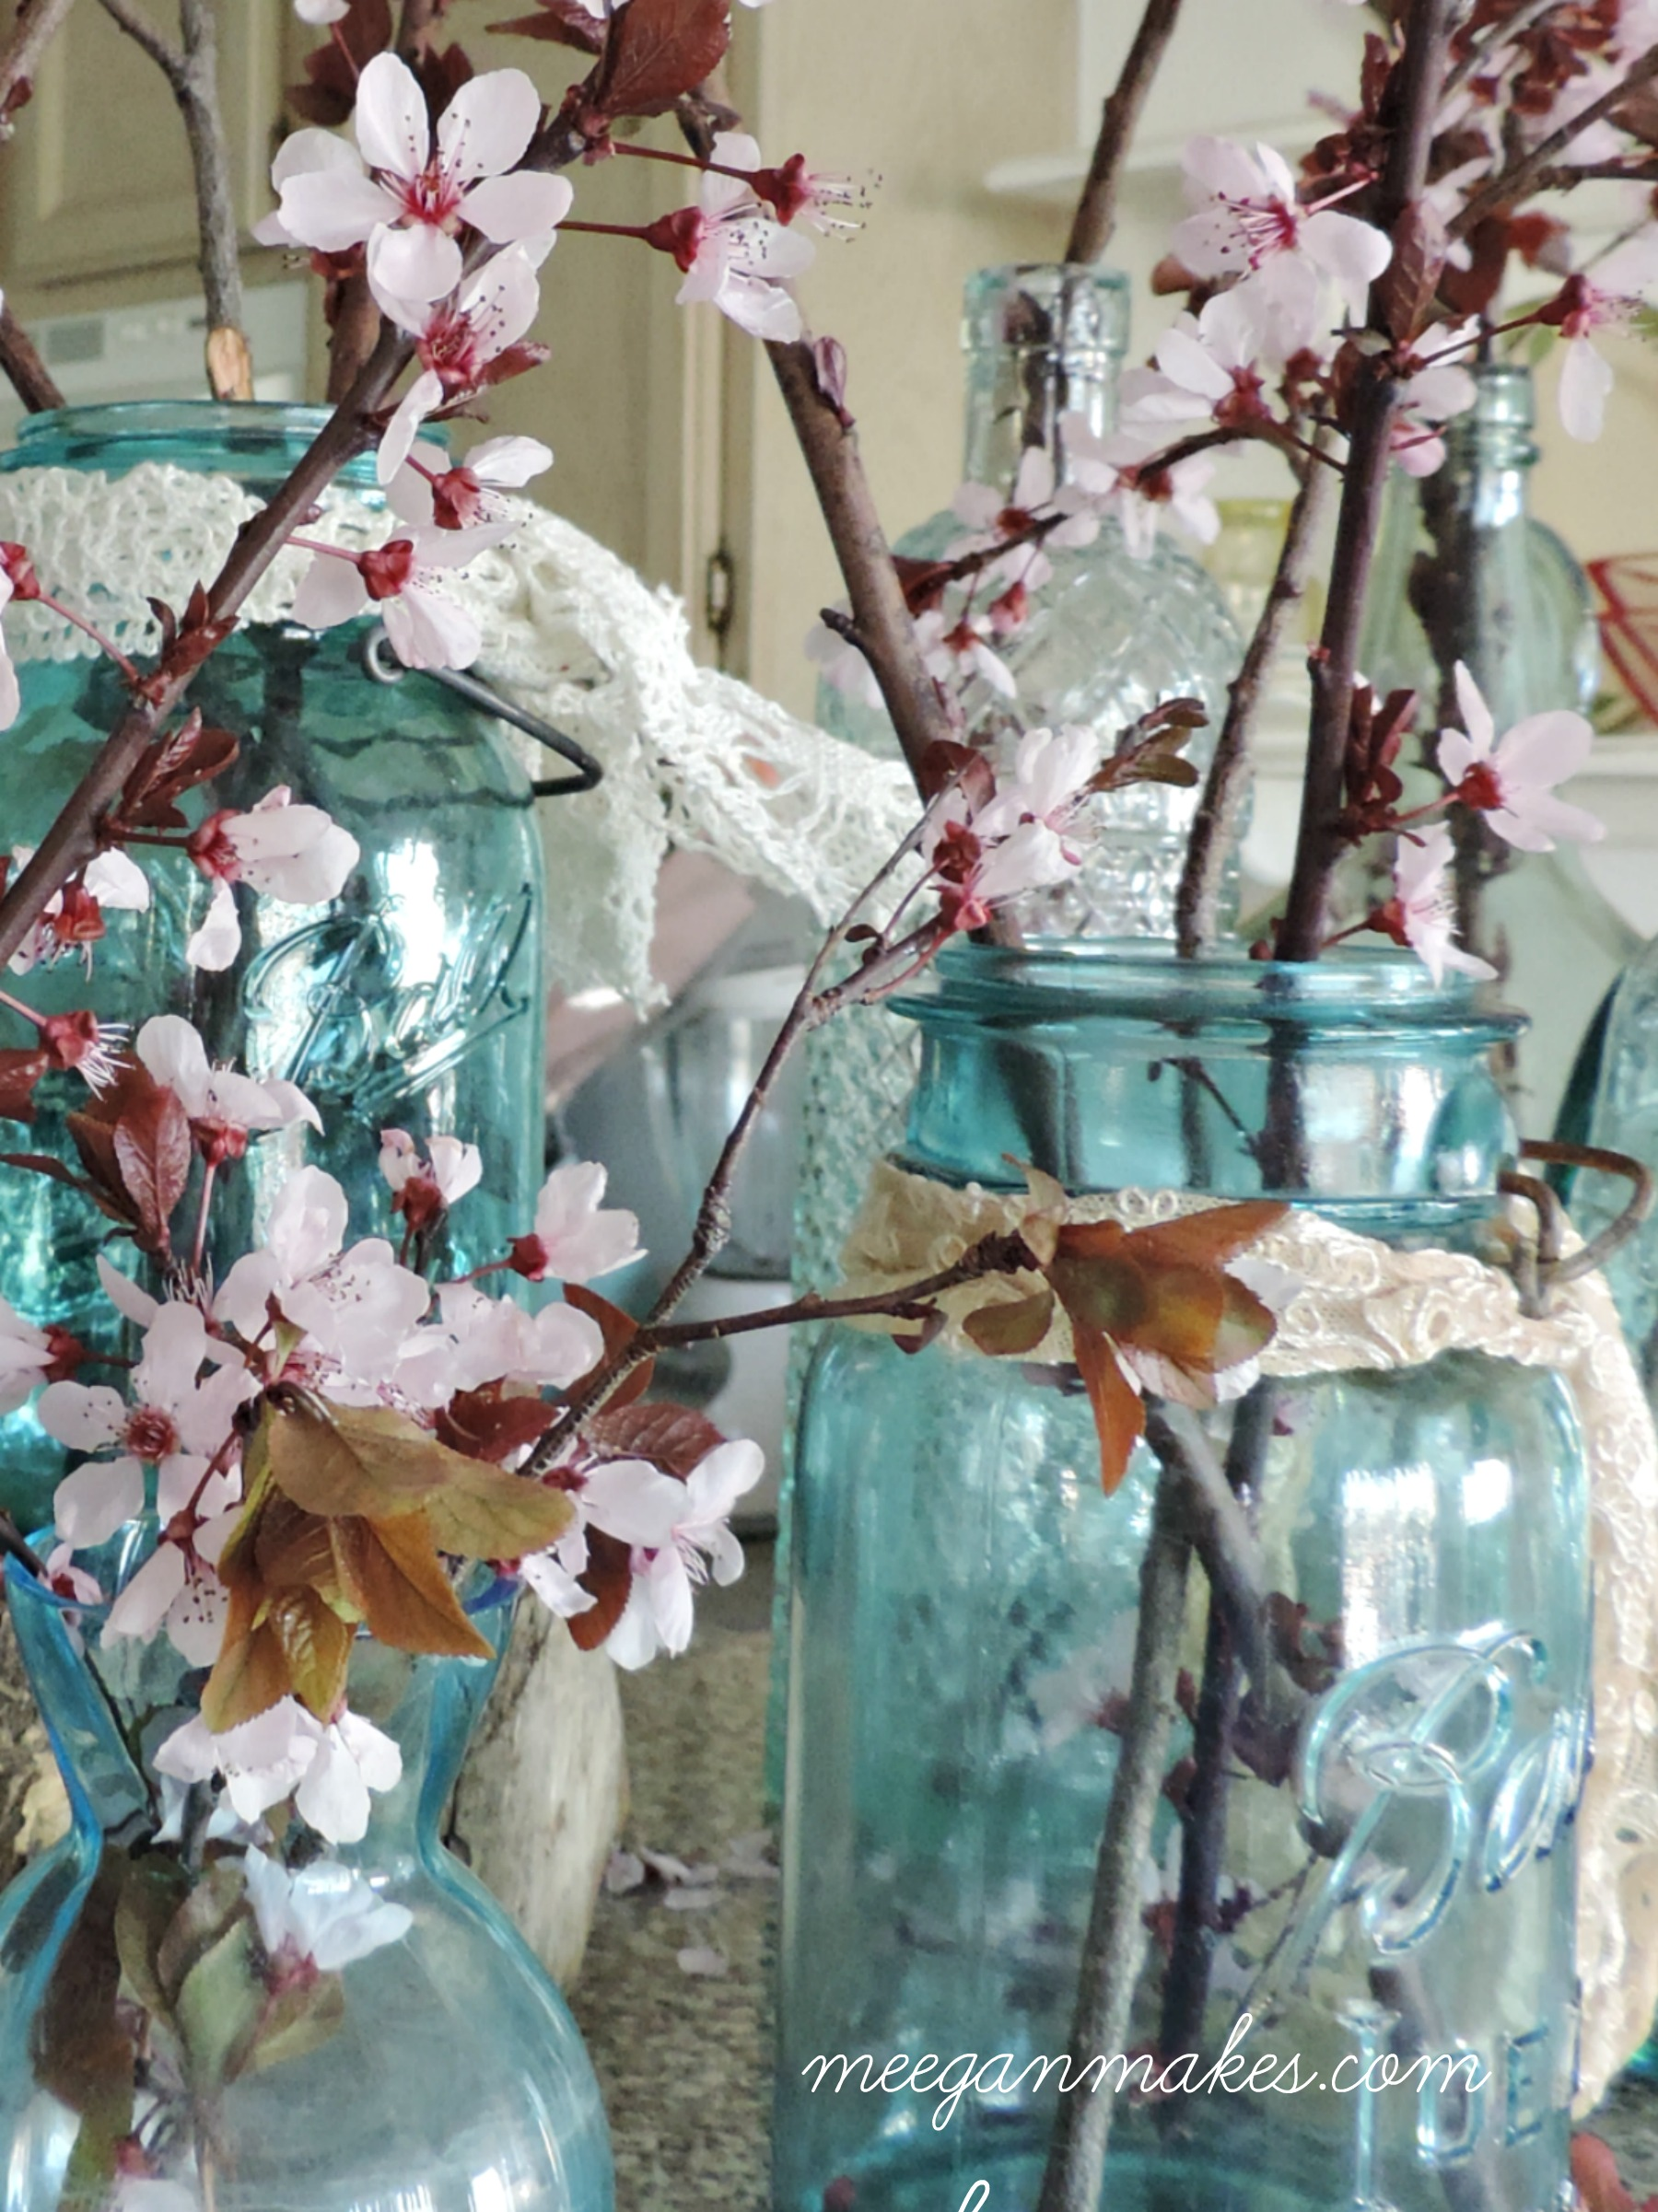 Vintage Mason Jars with Cherry Blossoms